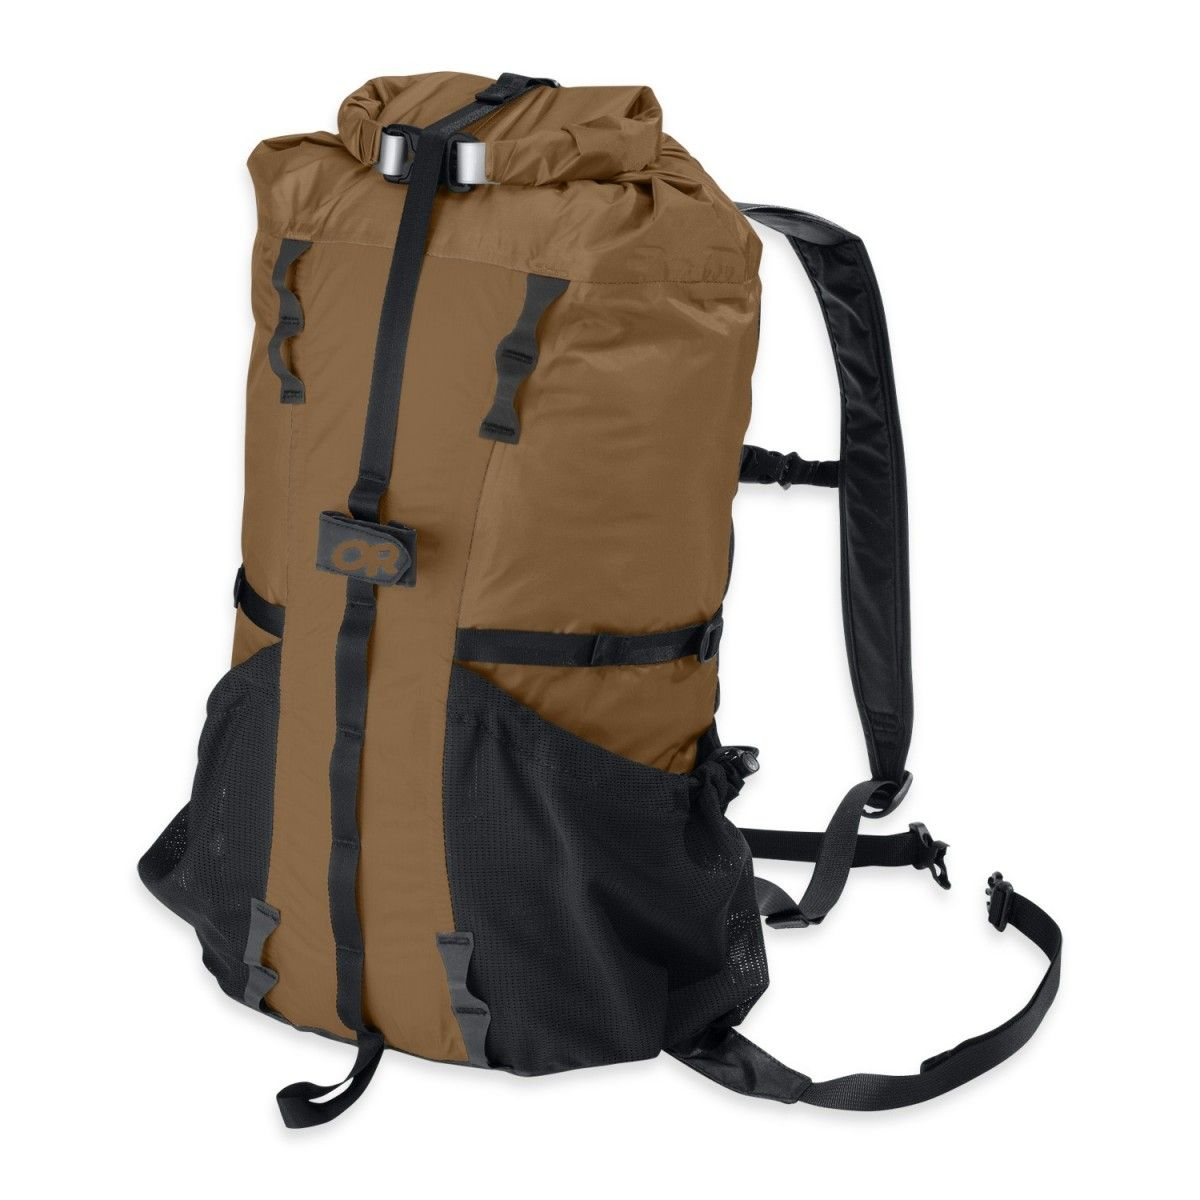 Outdoor Research Drycomp Summit Sack - Coyote. Outdoor Research Drycomp  Summit Sack - Coyote Ultralight Backpacking 2164a00976e77